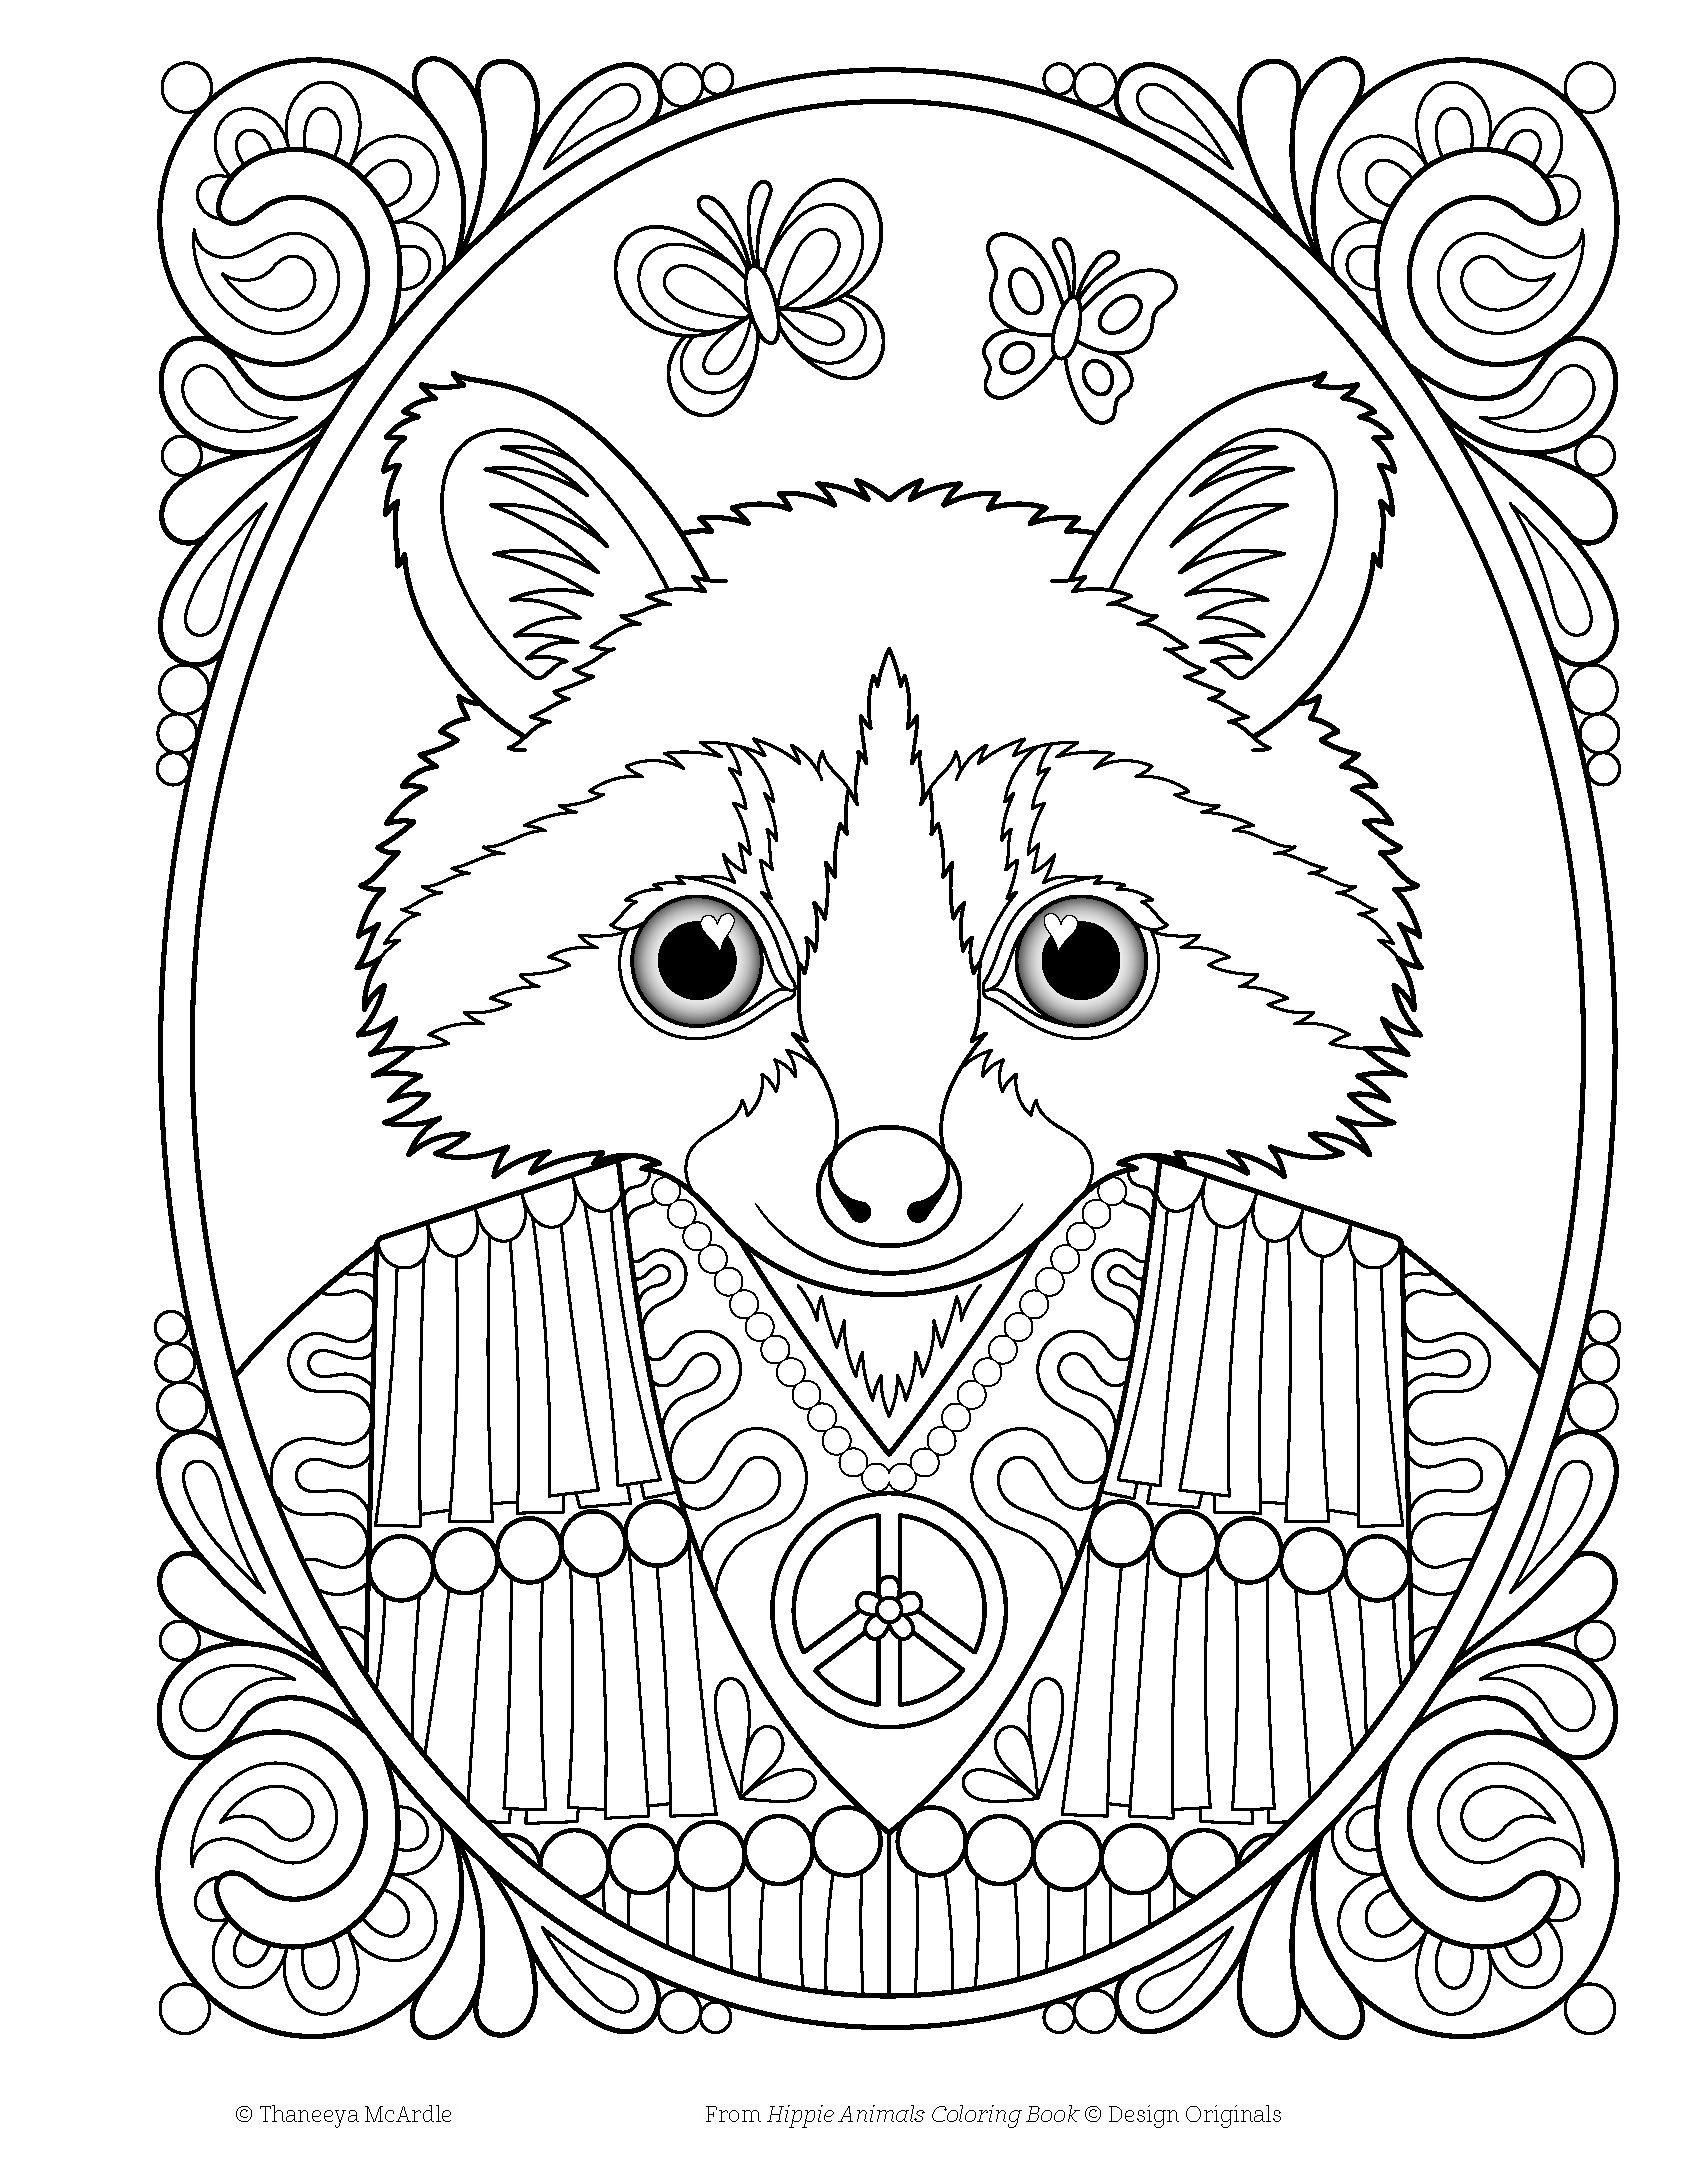 Coloring book download zip - Amazon Com Hippie Animals Coloring Book Coloring Is Fun Design Originals 9781497202085 Thaneeya Mcardle Books